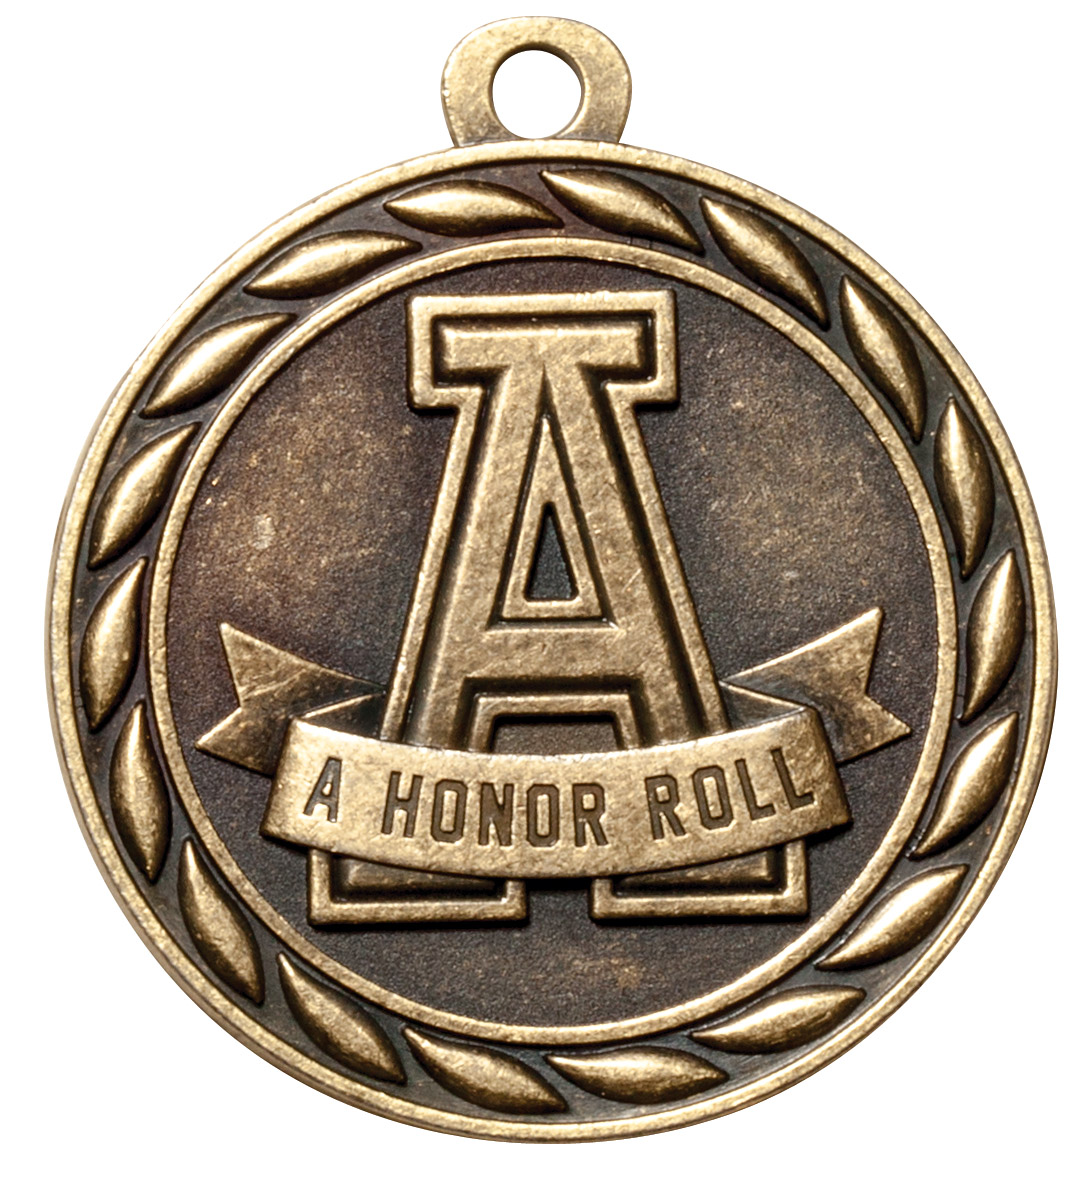 M311-MS - A-Honor Roll Medal (Gold Only)